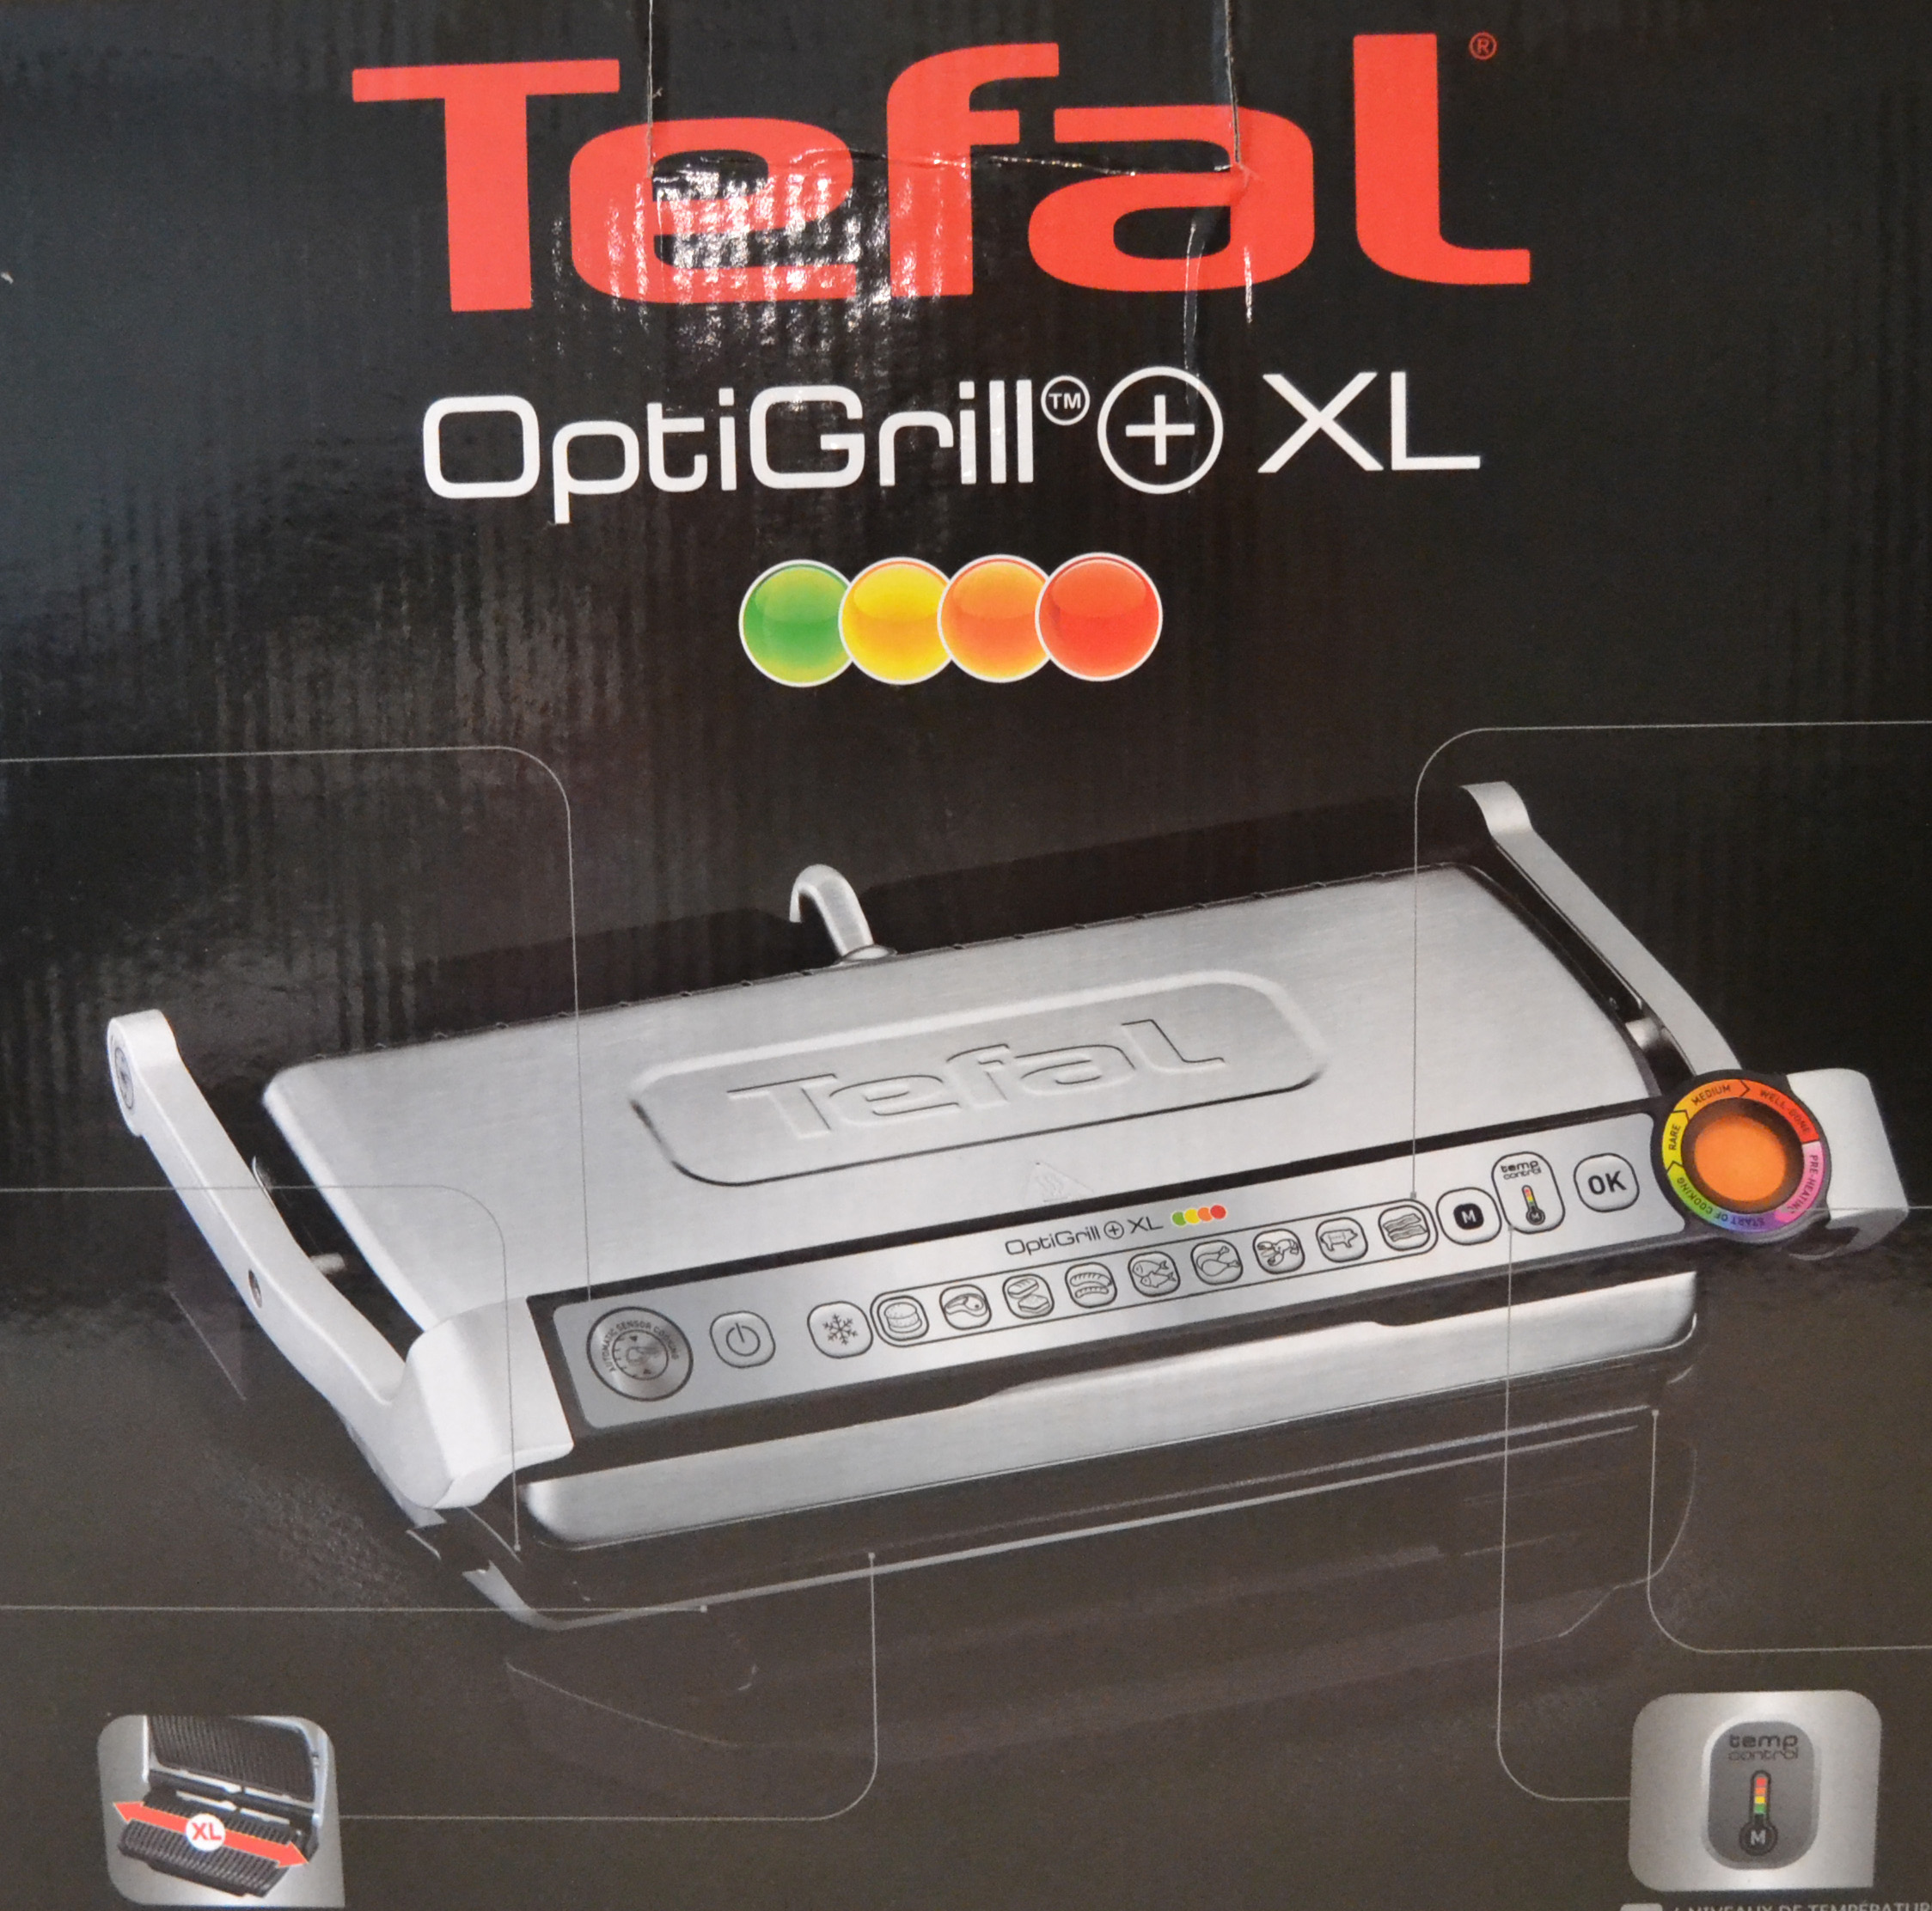 tefal gc722d kontaktgrill optigrill xl 2000 watt mit 9. Black Bedroom Furniture Sets. Home Design Ideas